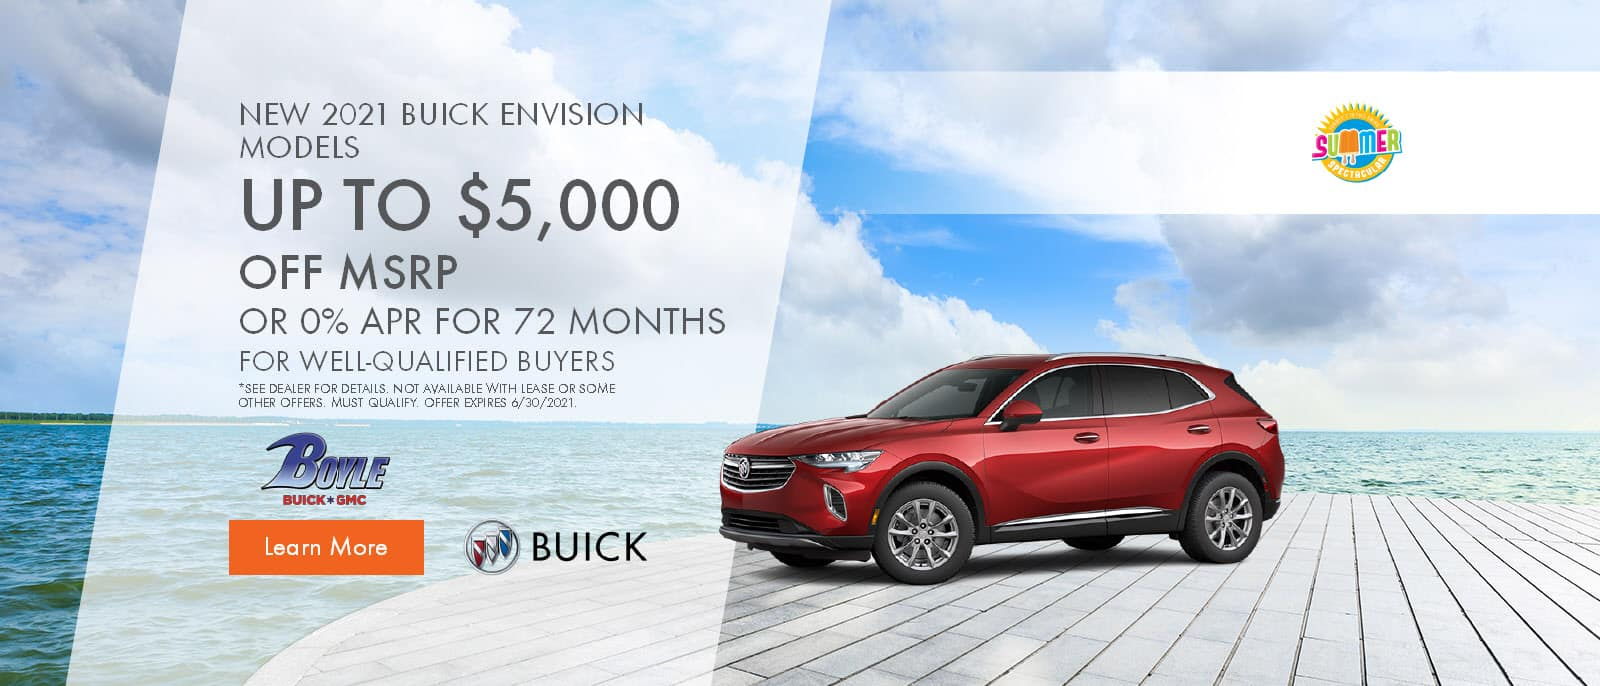 Up to $5,000 Off MSRP